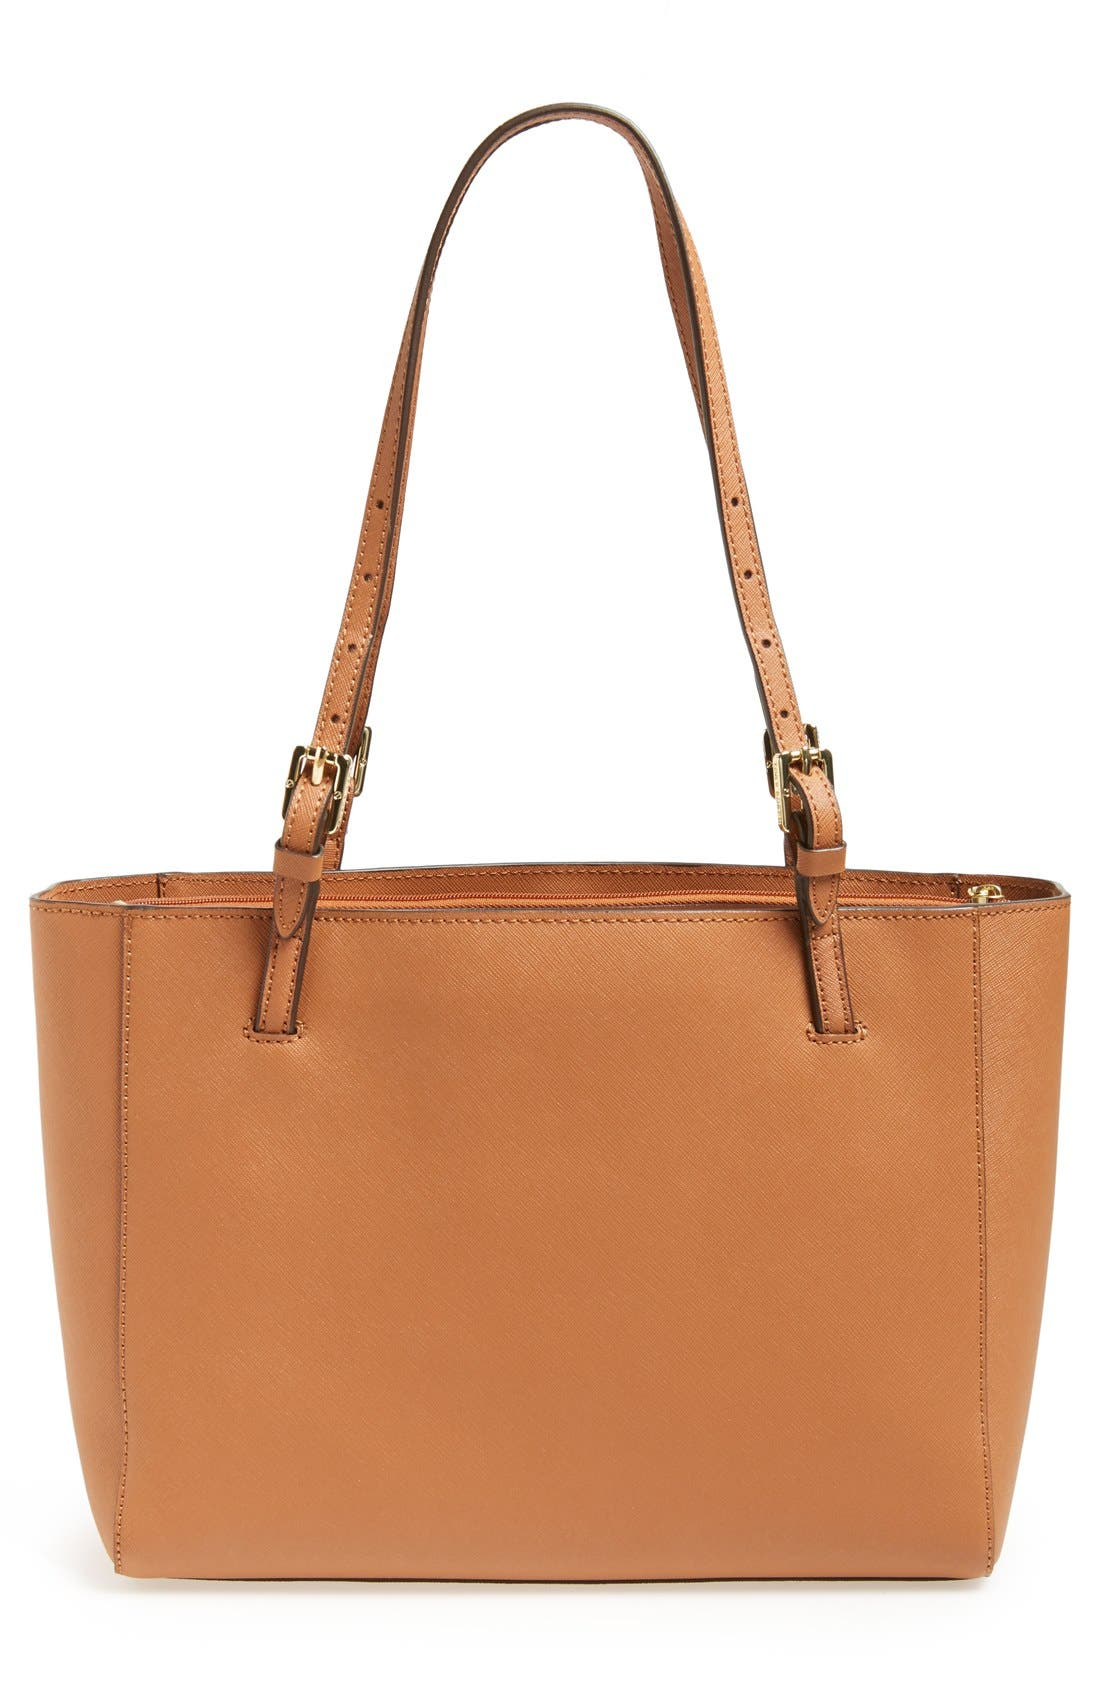 'Small York' Saffiano Leather Buckle Tote,                             Alternate thumbnail 19, color,